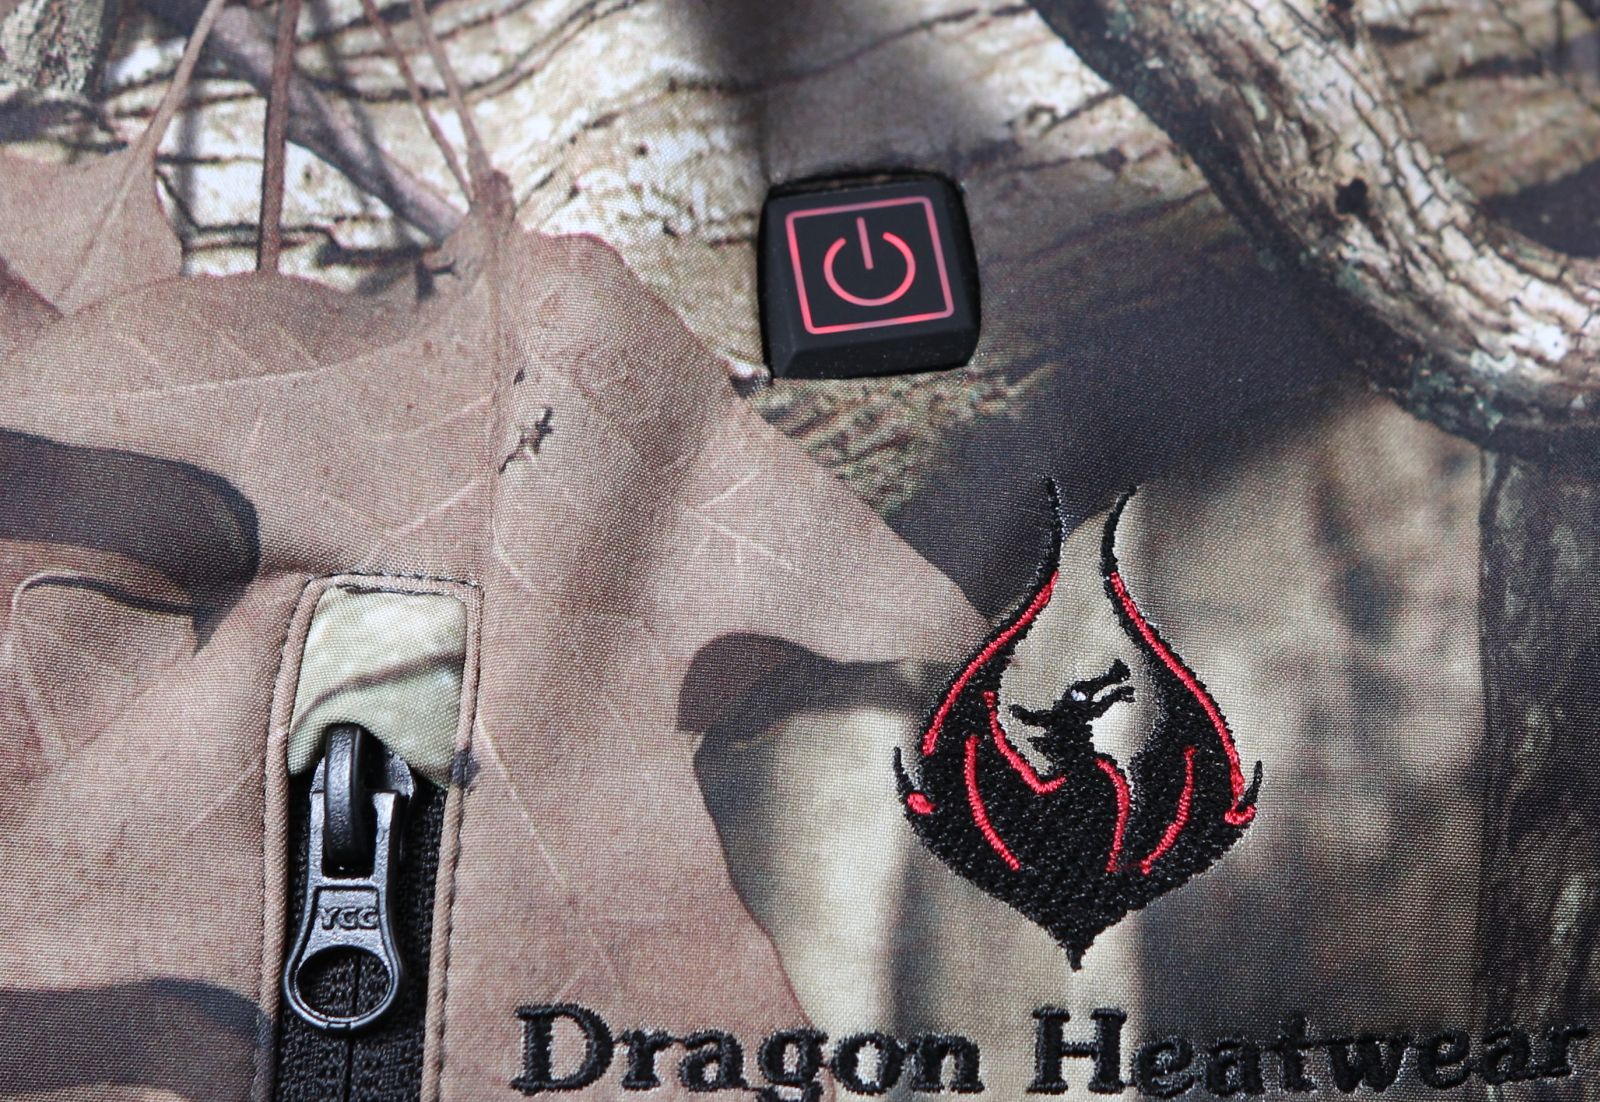 21babfe99 Wyvern Heated Jacket Review | The Hunting Gear Guy